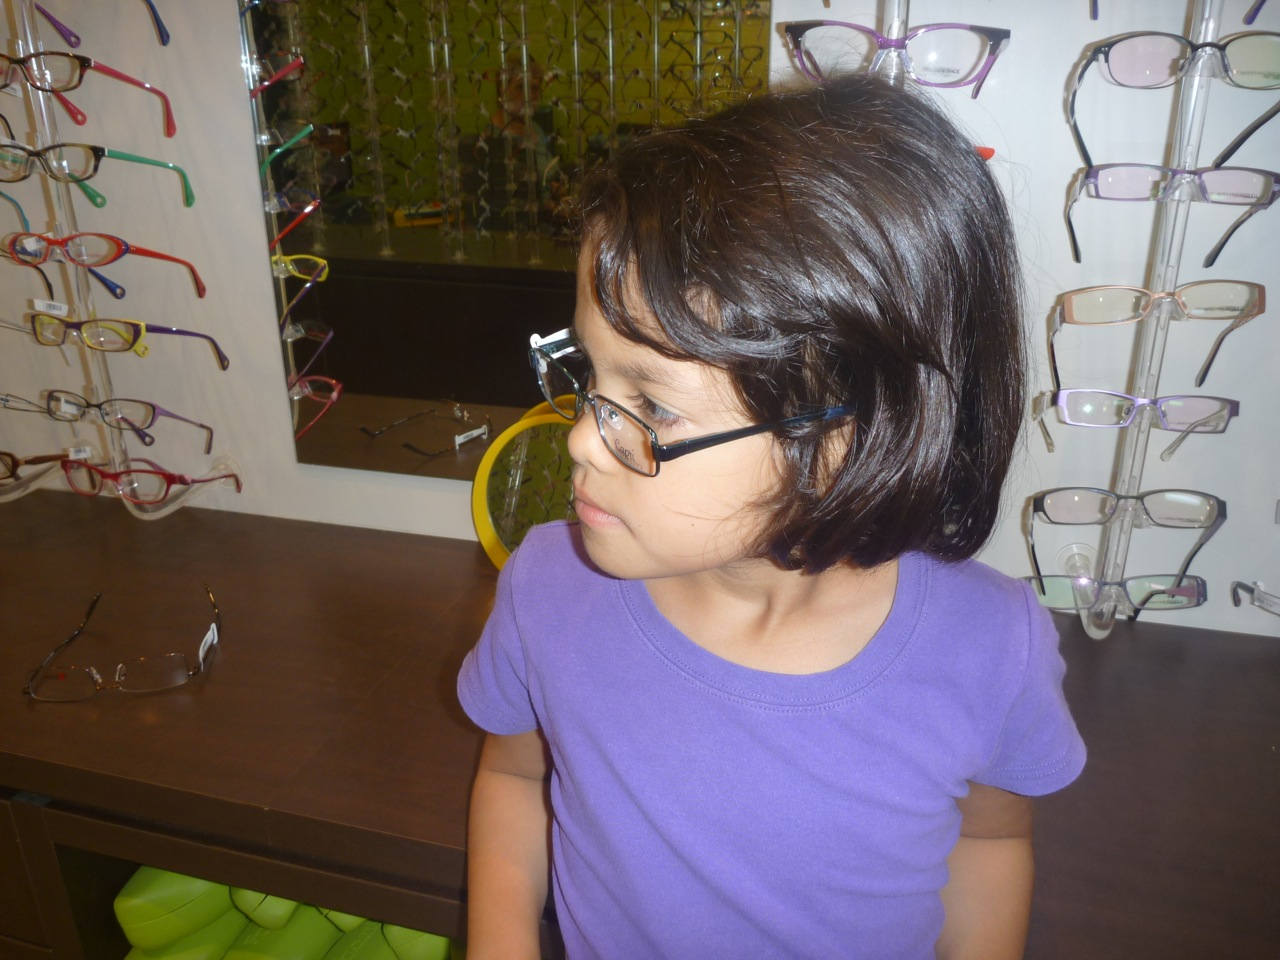 Ariya trying on some glasses. Thankfully she did not end up needing them which unfortunately I could not say the same for myself.